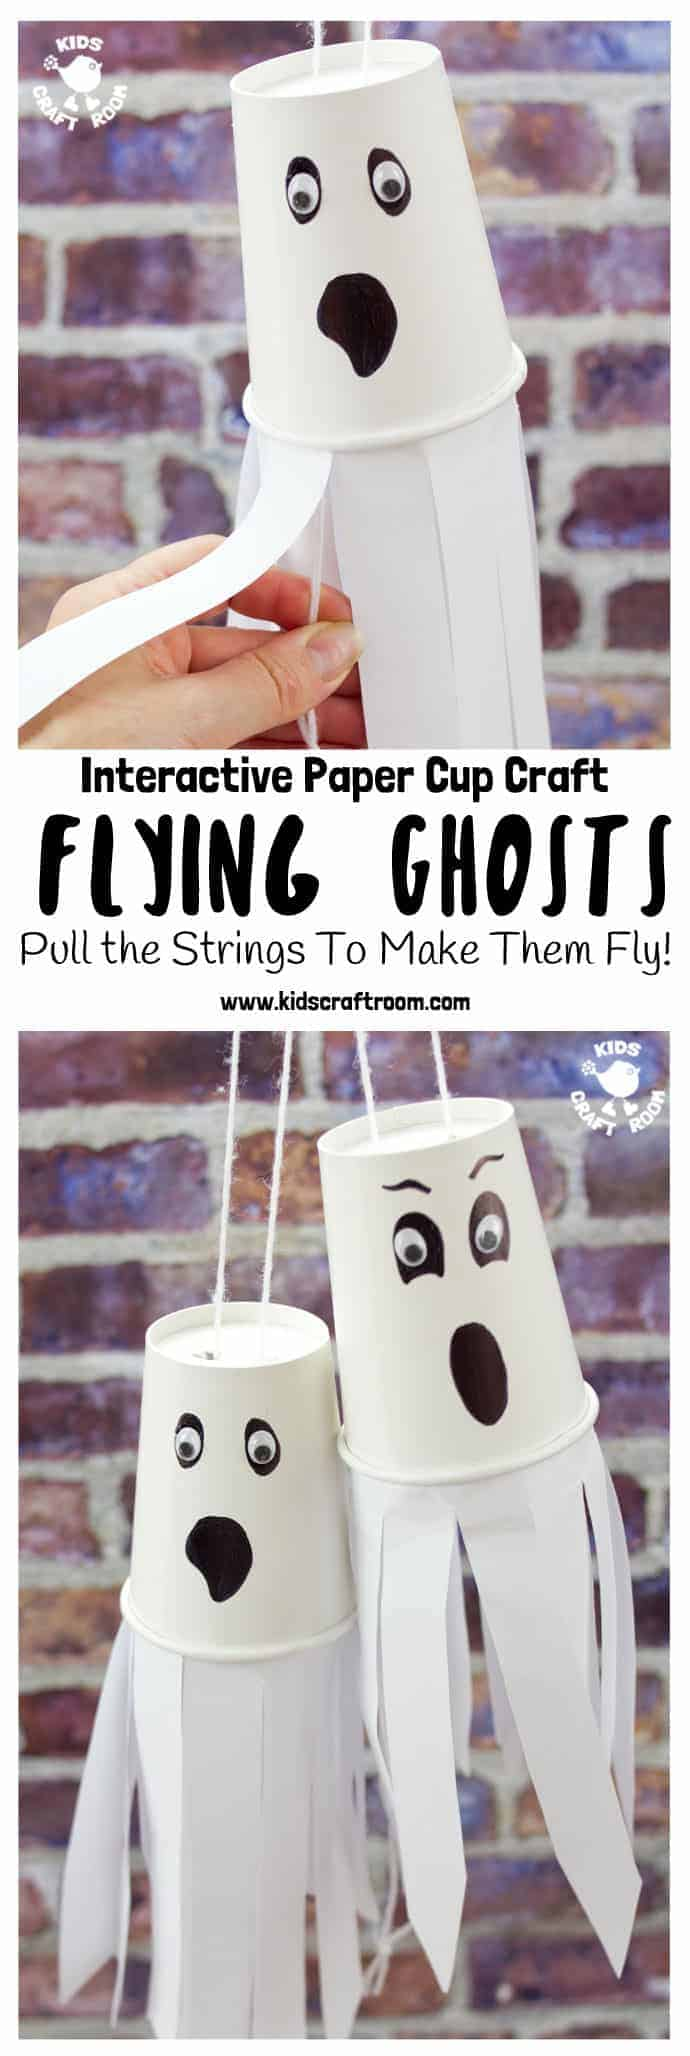 Do your kids love interactive Halloween crafts? We do! It's so fun to make something and then be able to play with it too. This easy Paper Cup Flying Ghost Craft is sure to be a hit! Pull the strings to see the paper cup ghosts fly up and down! So spooky and fun! #halloween #halloweencrafts #halloweendecorations #kidscrafts #crafts #ghosts #ghostcrafts #papercups #papercupcrafts #kidscraftroom